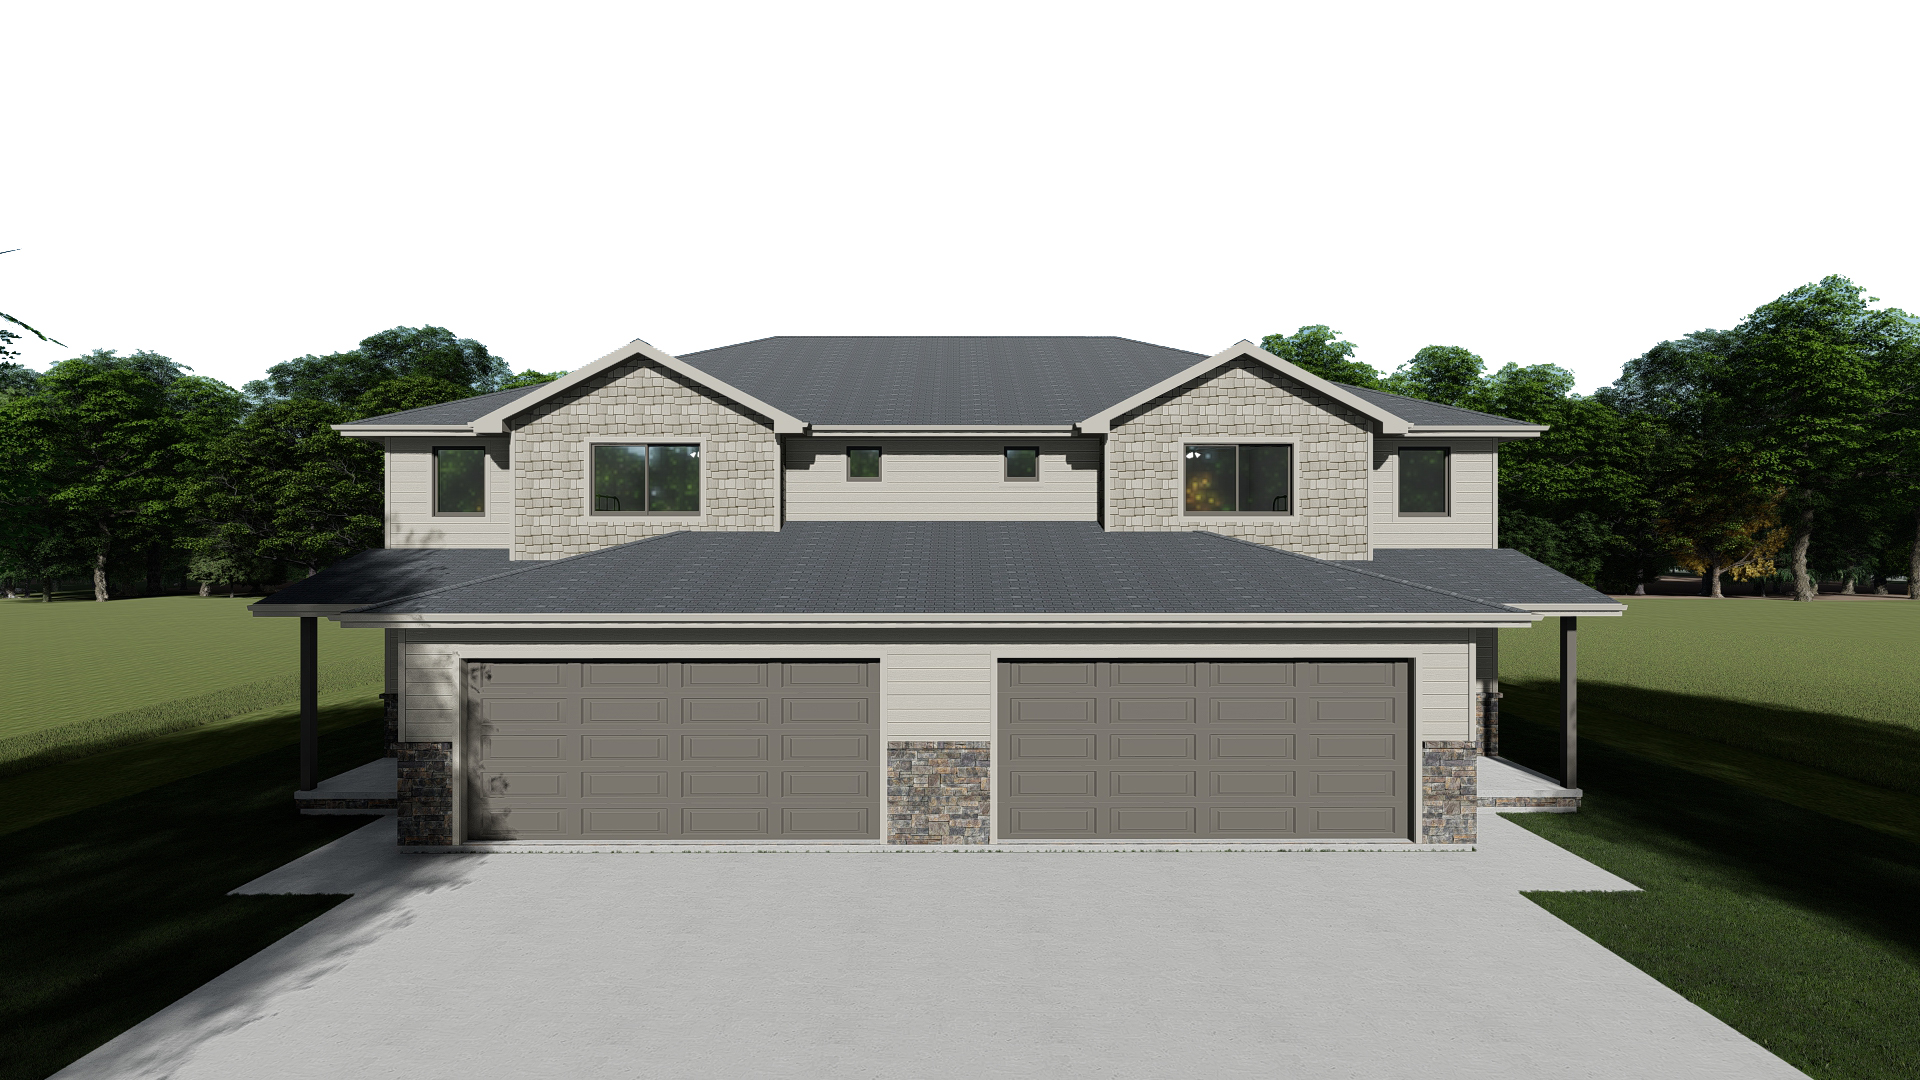 VA-103498 Render_Front Elevation NO Sky